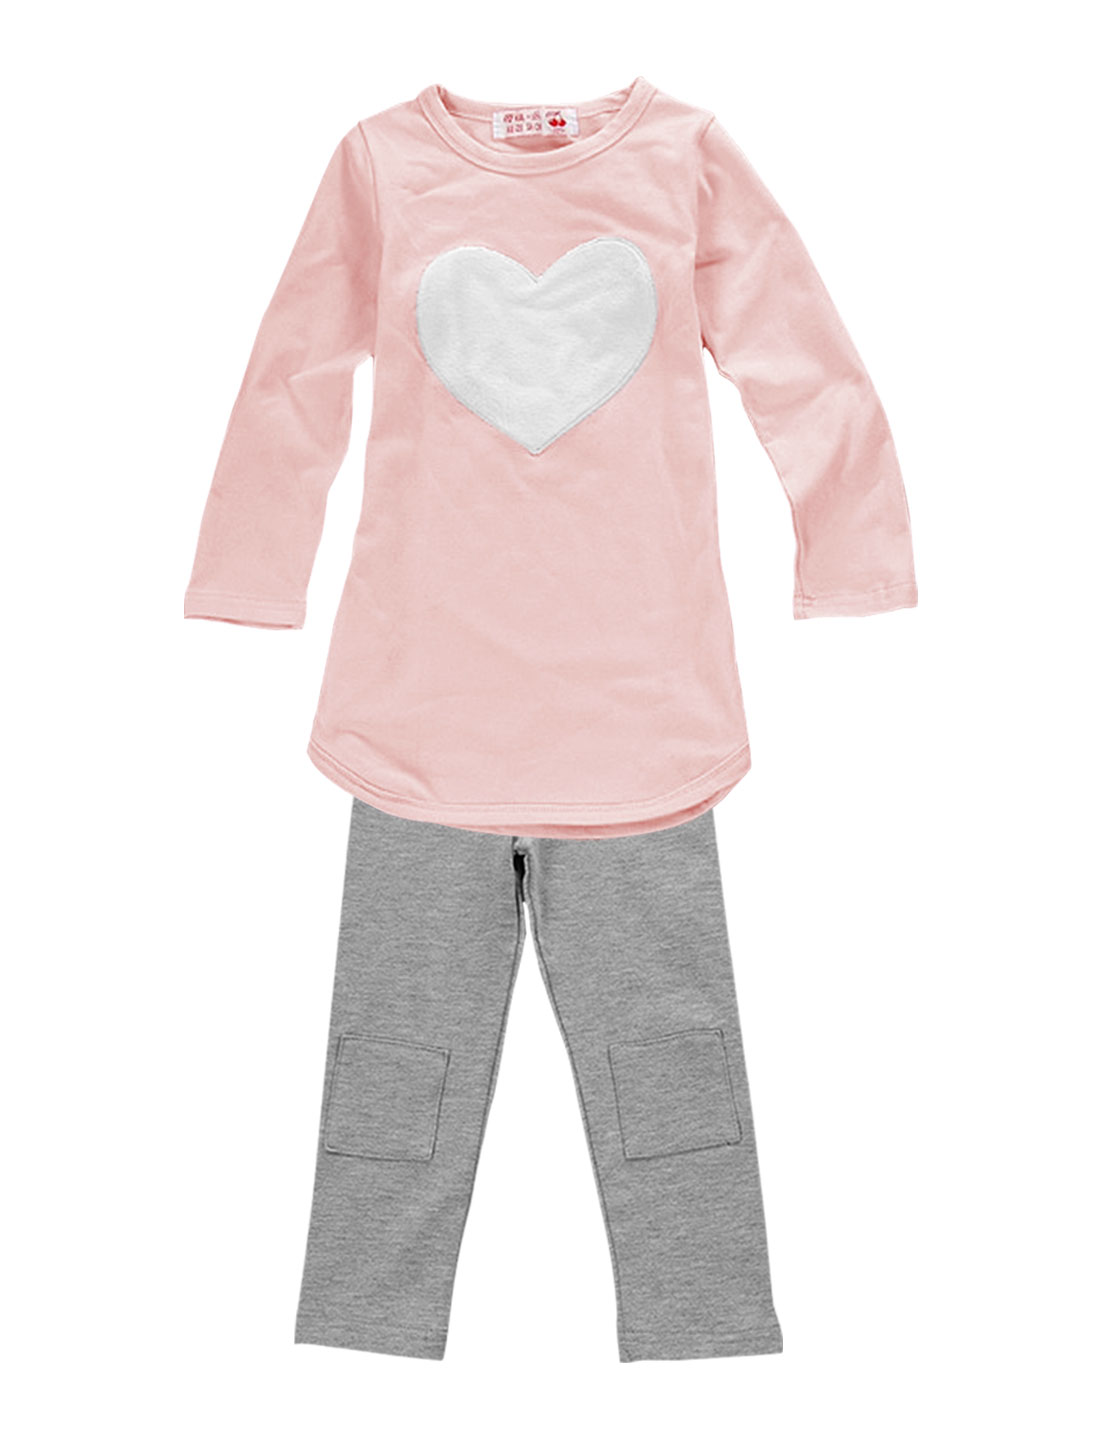 Girls Heart Shape Panel Top w Elastic Waist Pants 3-Pieces Sets Pink Gray 3T